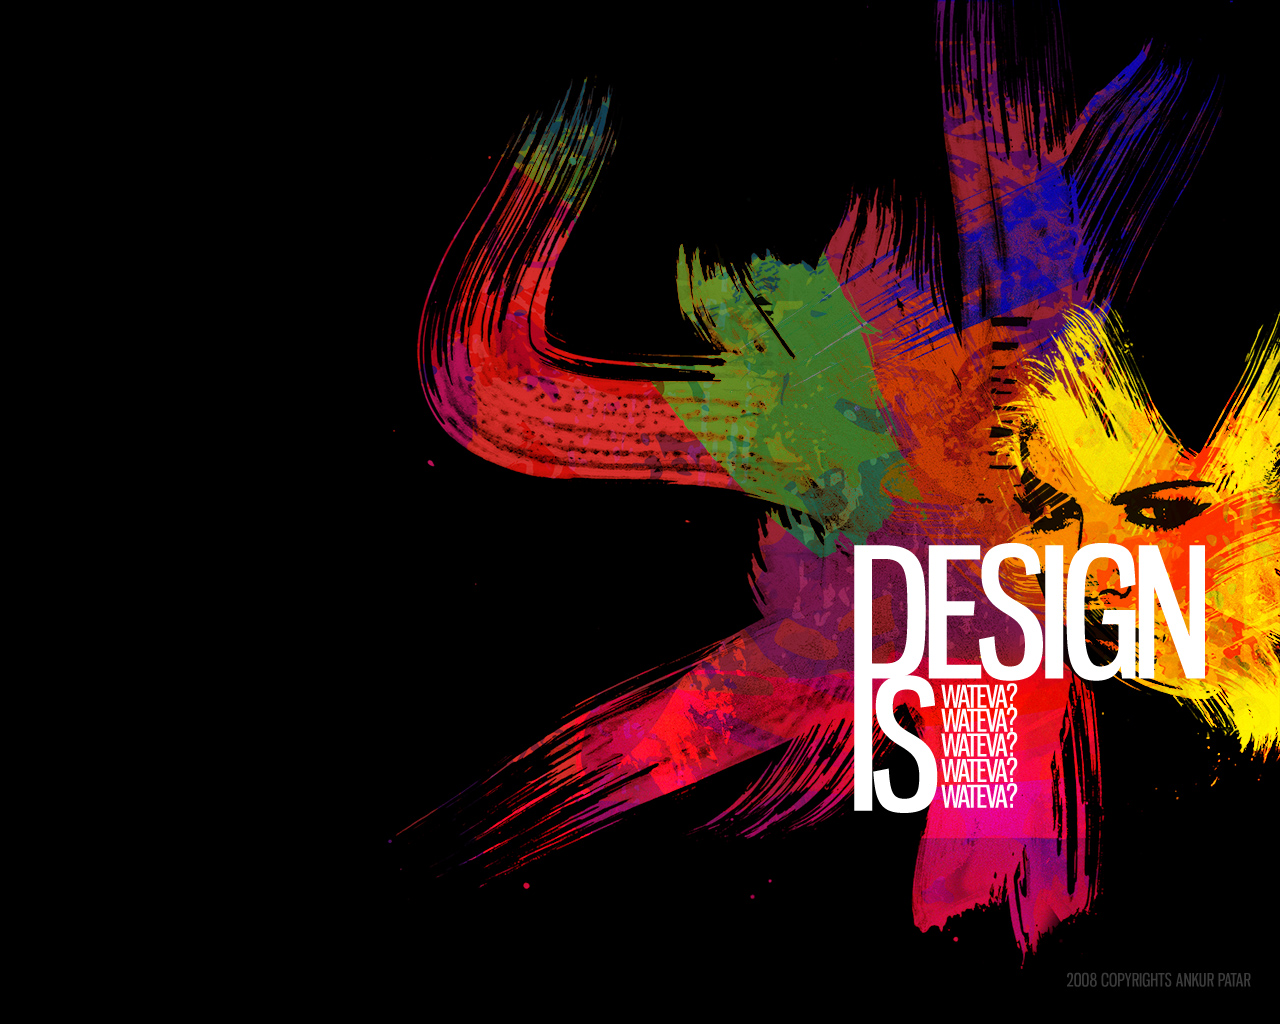 Design Wallpapers by Ankur Patar at Coroflotcom 1280x1024